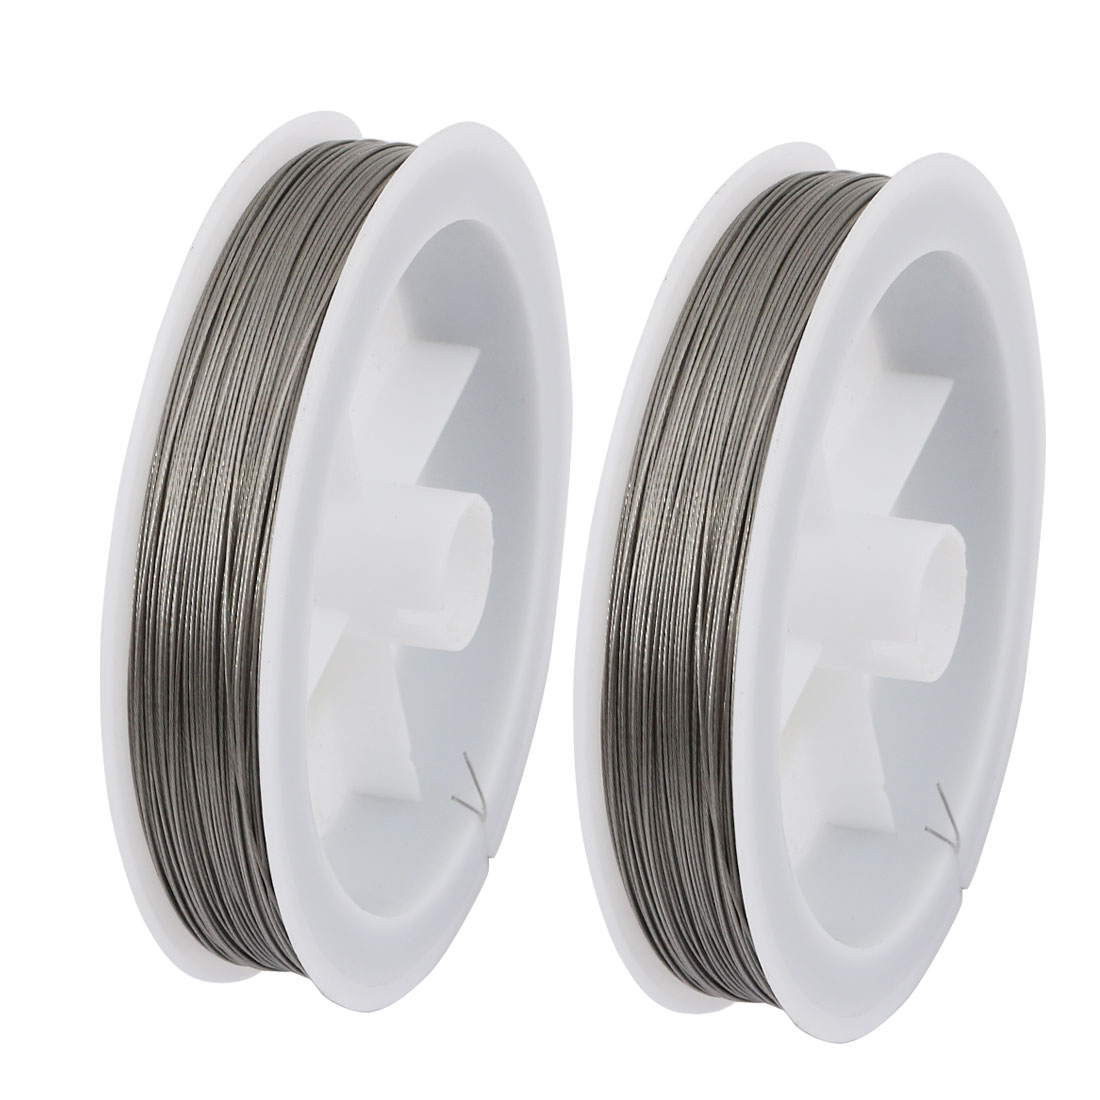 2pcs 0.3mm Diameter 100 Meters Long Steel Wire Light Accessory for Crystal Bead